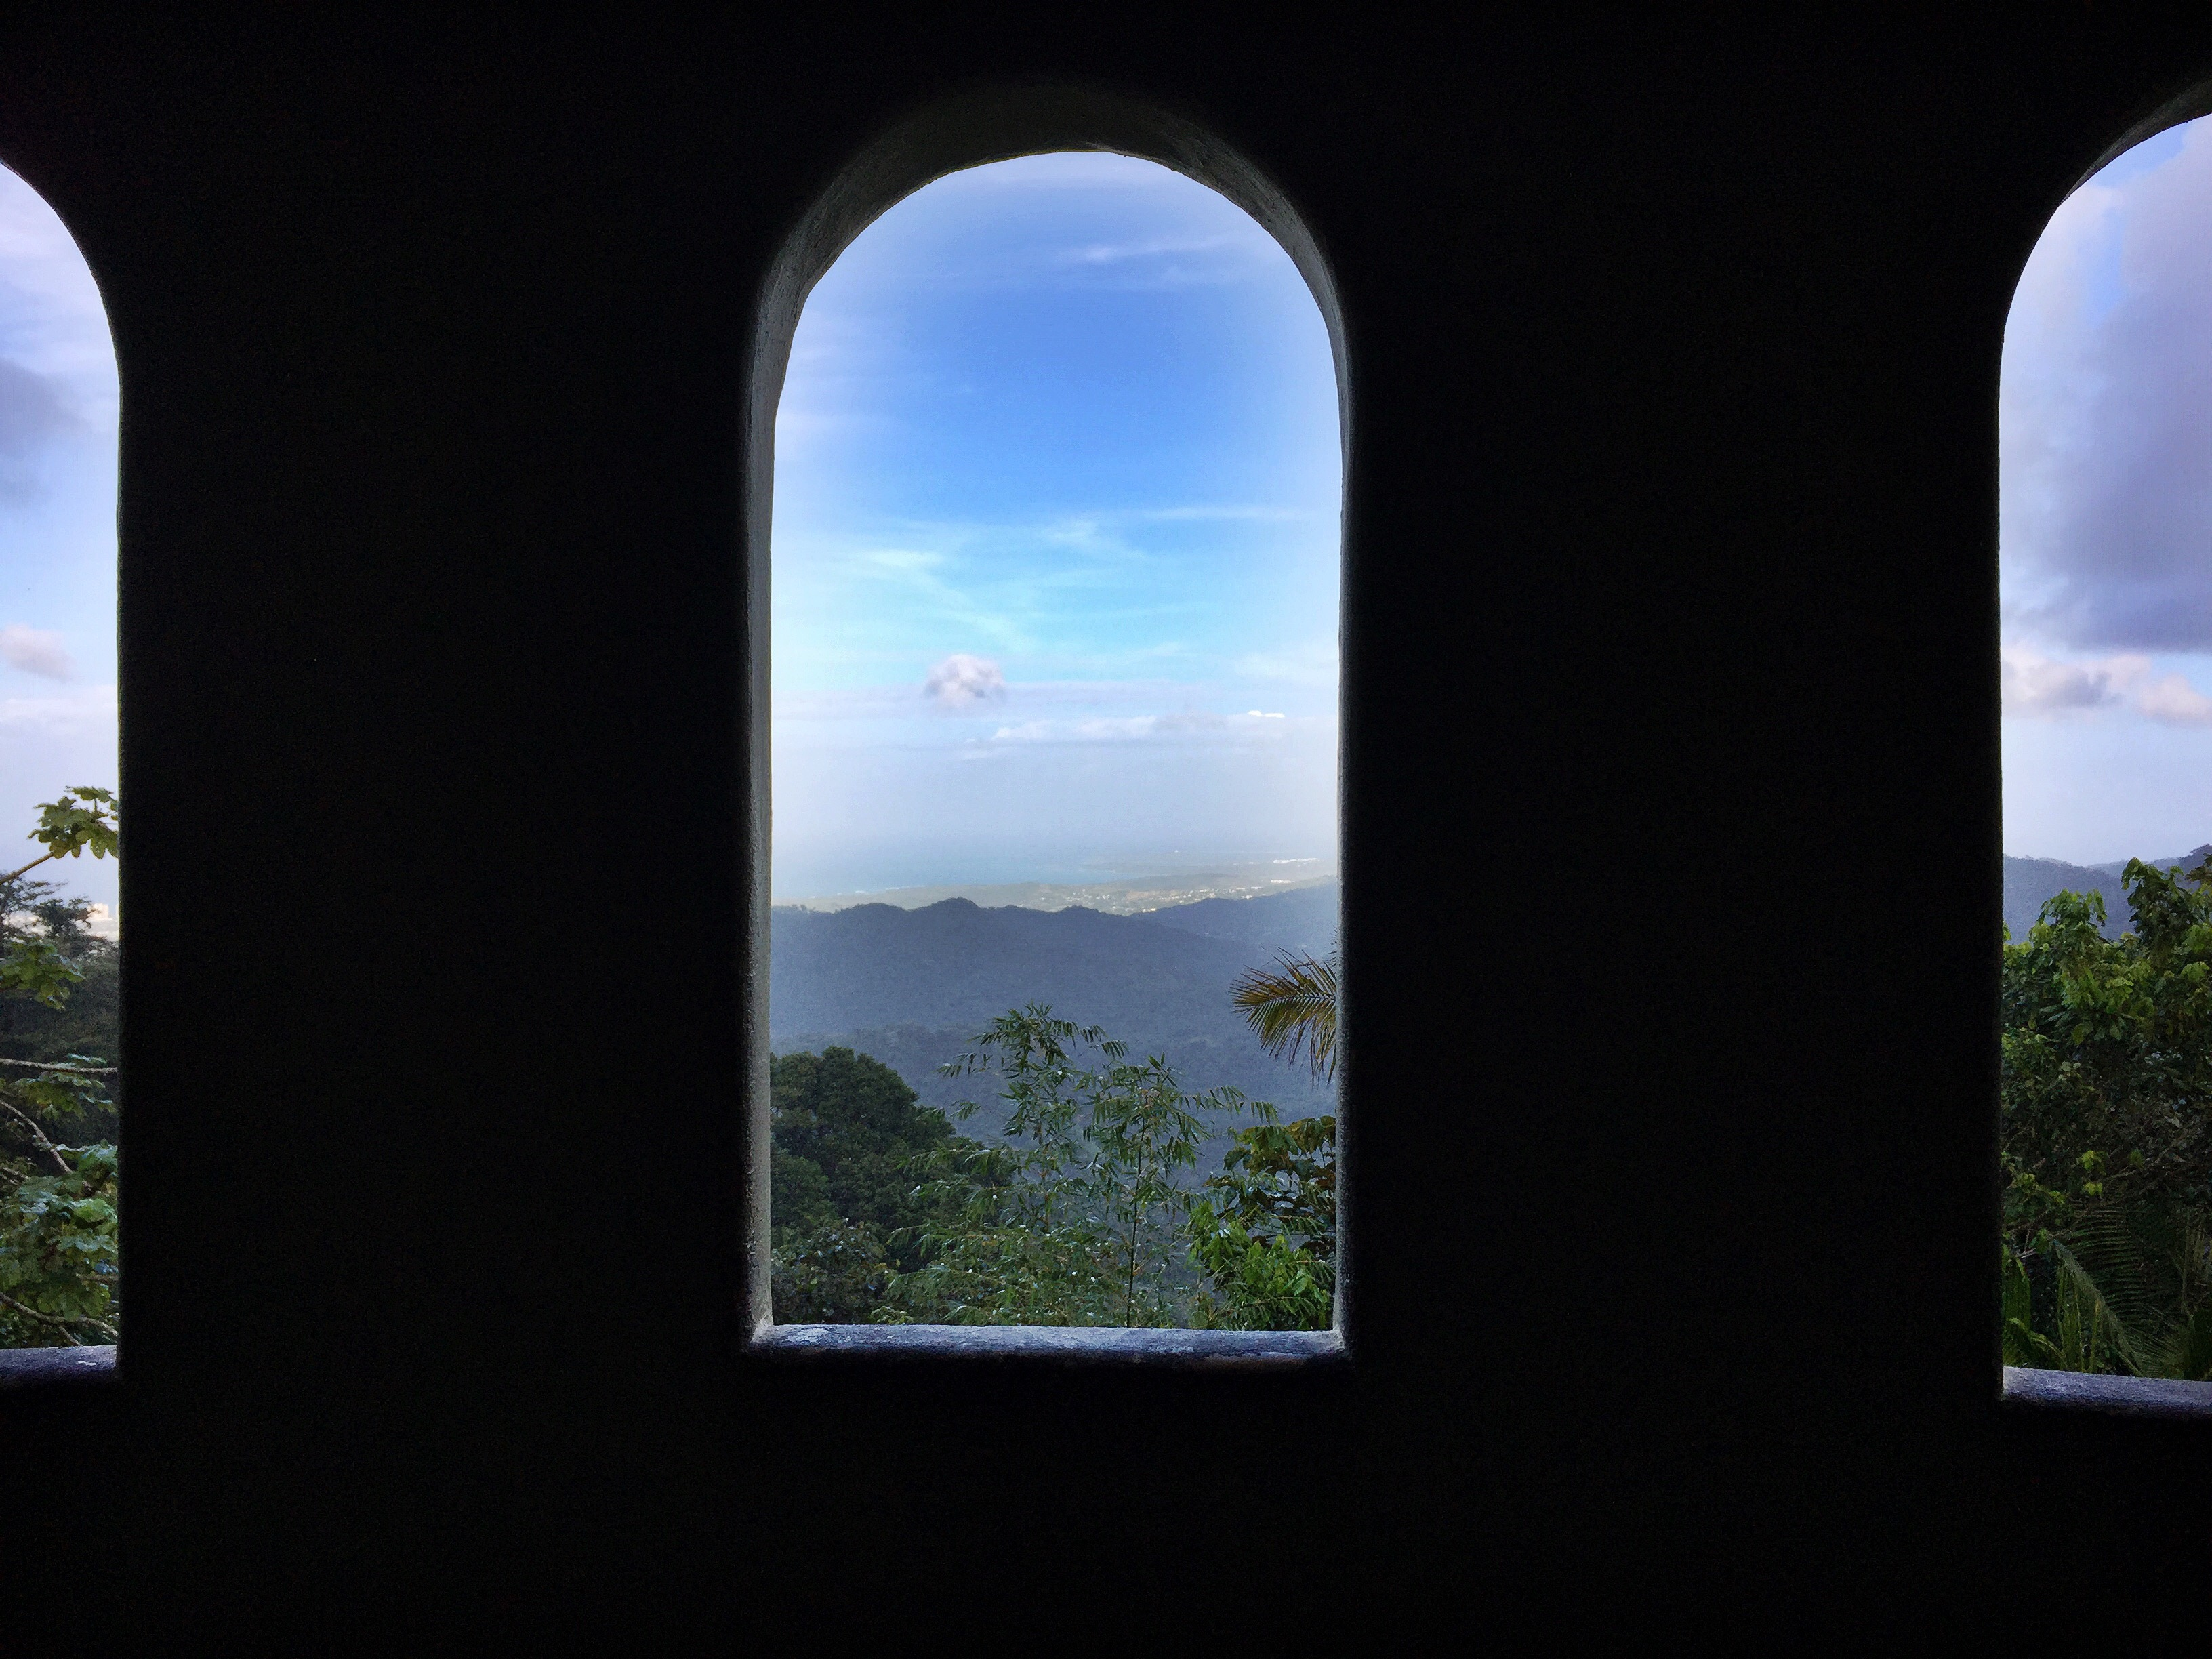 View of the El Yunque Rainforest through an arched window of a tower